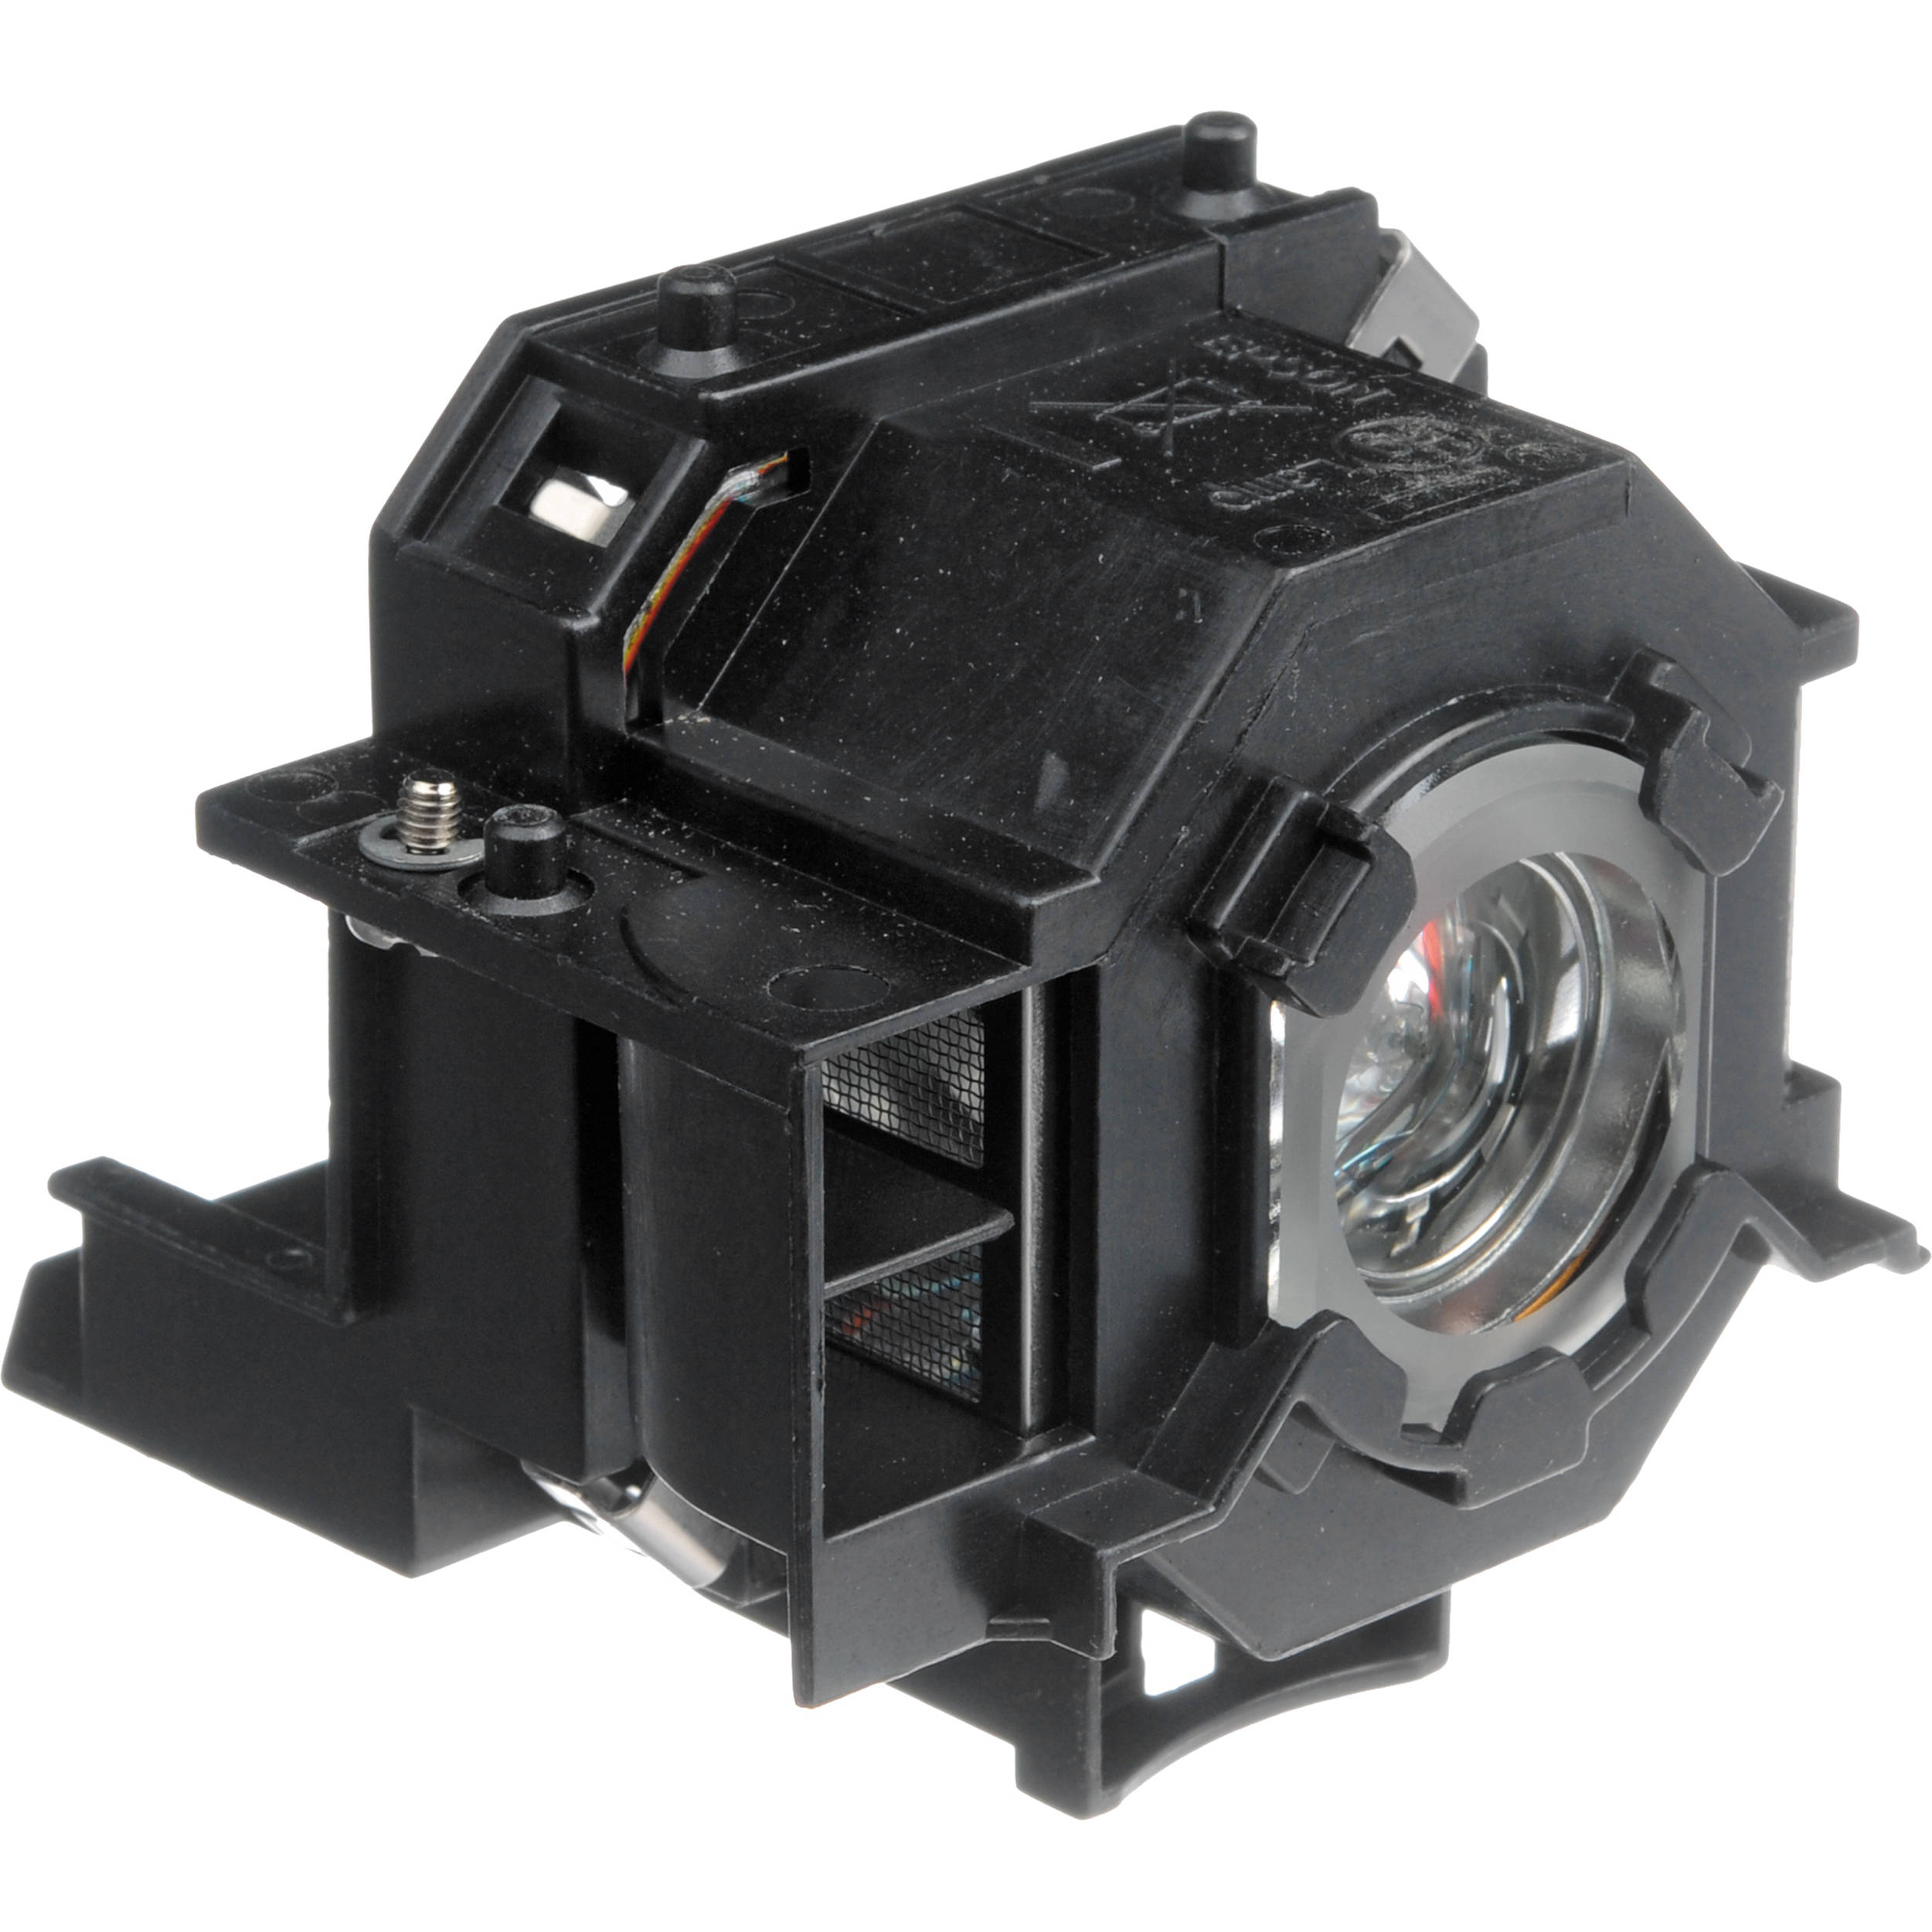 Epson V13H010L42 Projector Replacement Lamp V13H010L42 B&H Photo